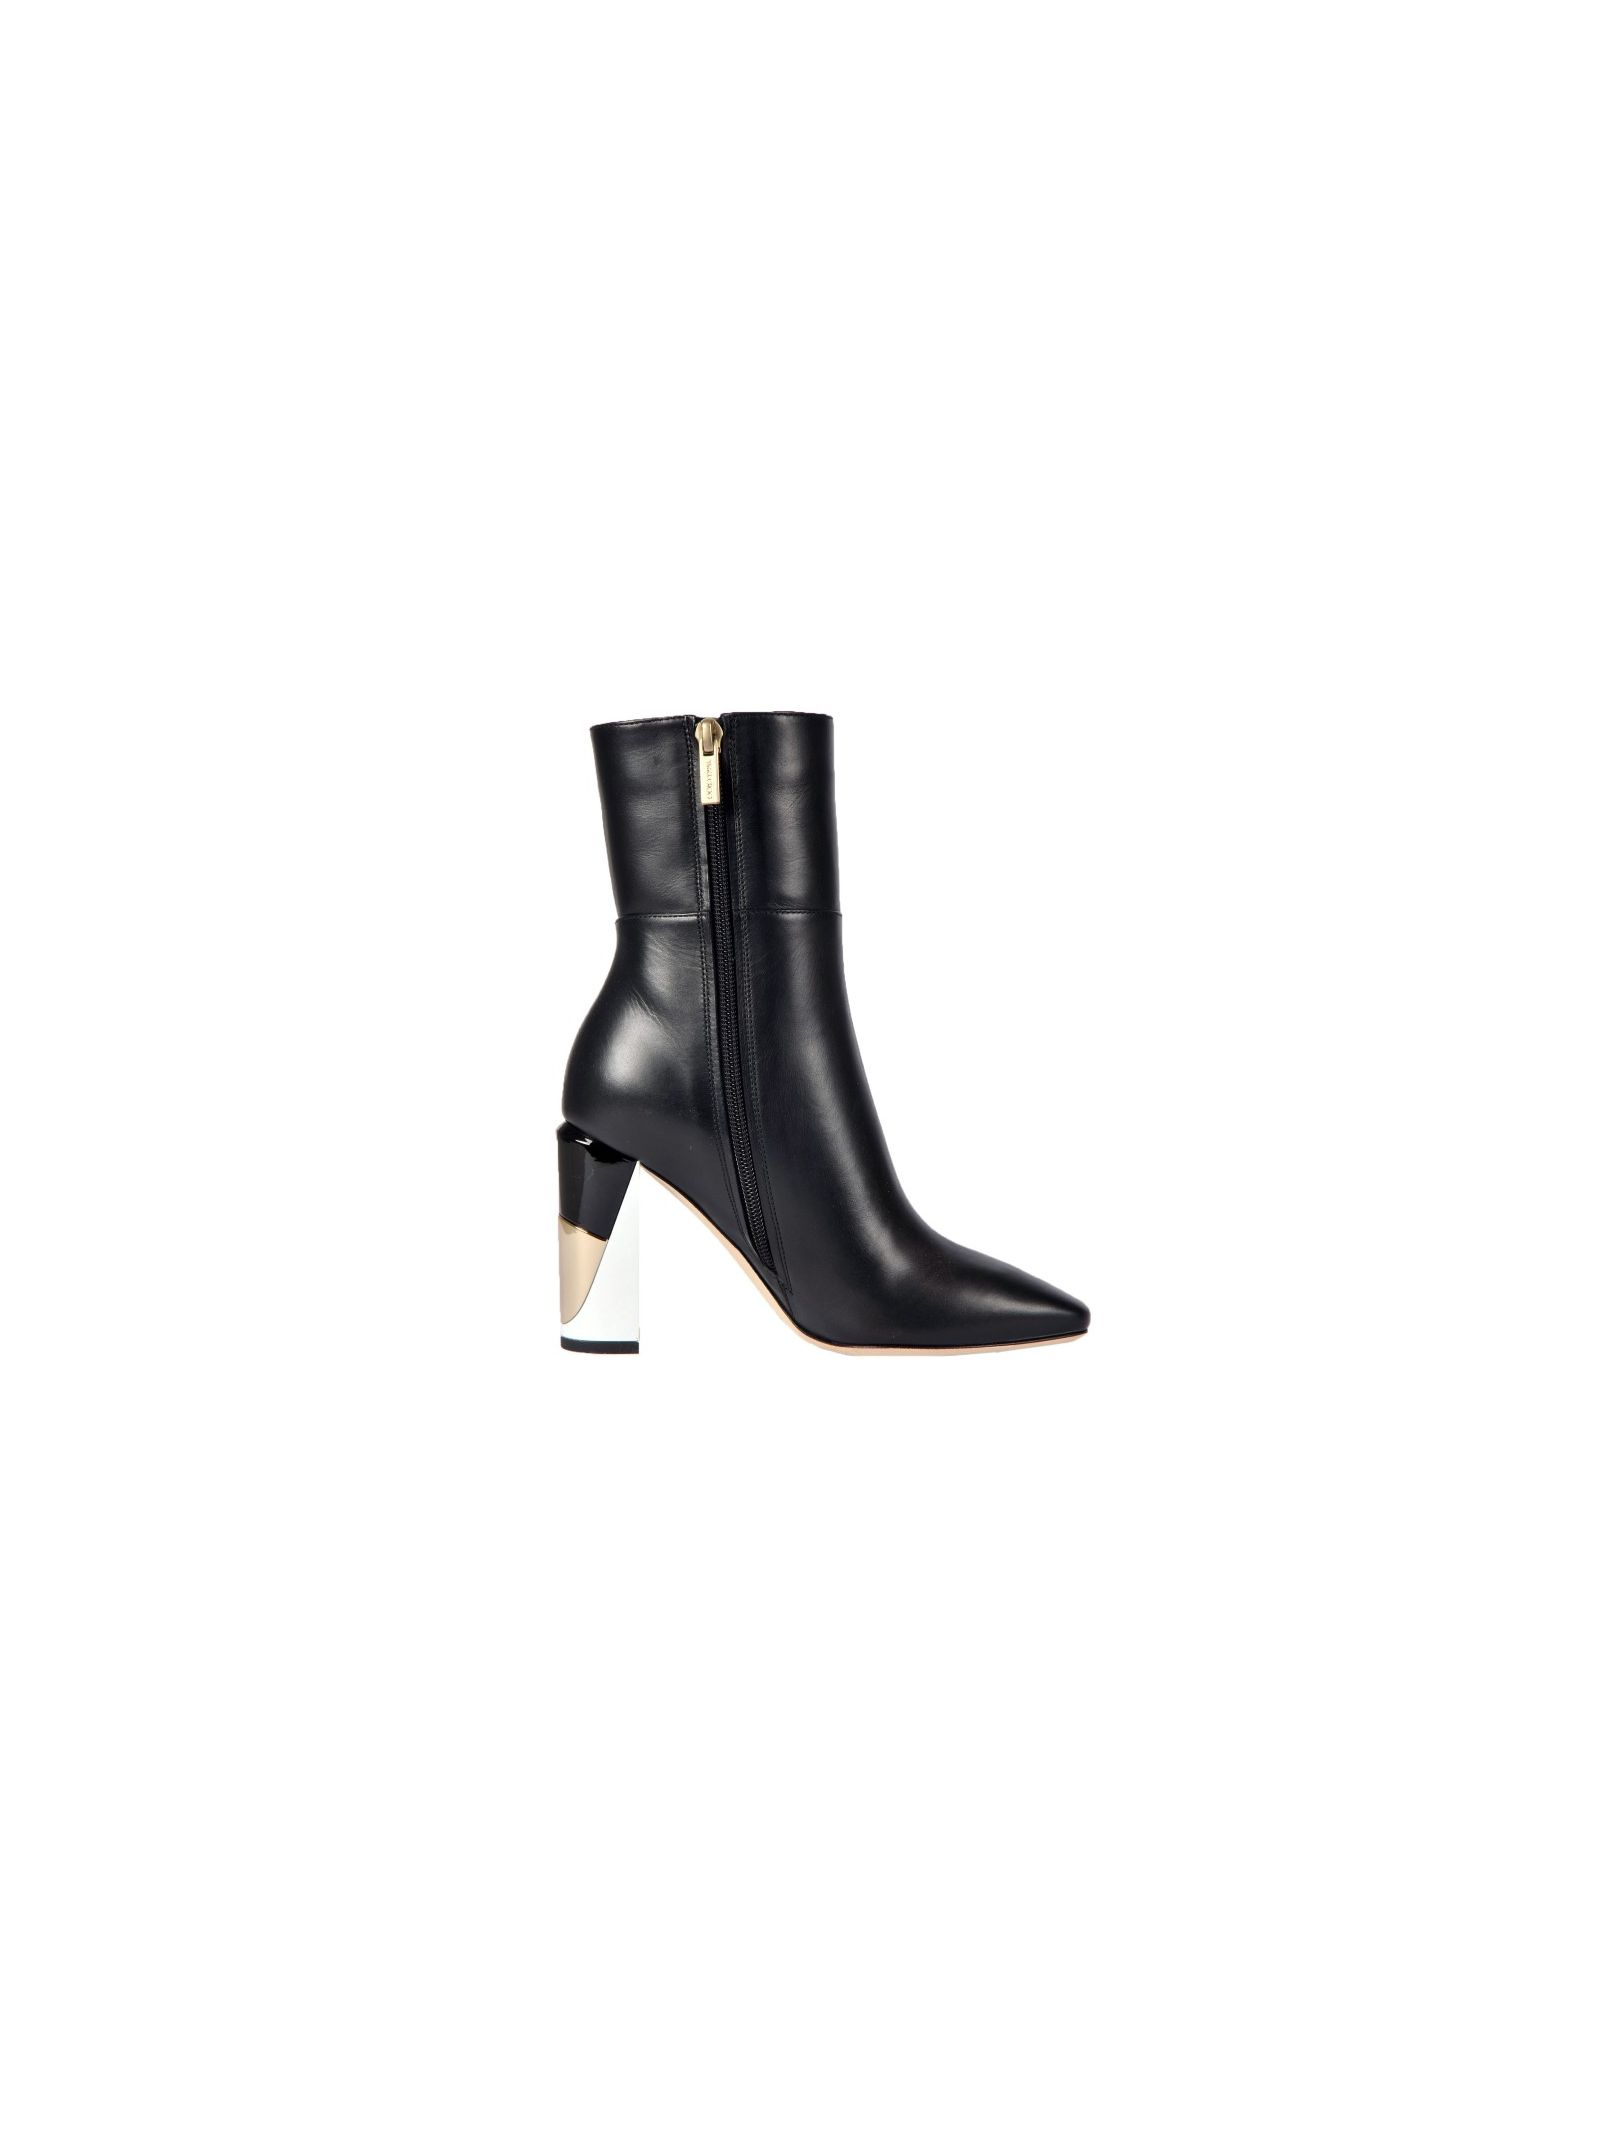 Jimmy Choo Melrose Boots - Jimmy Choo - Home